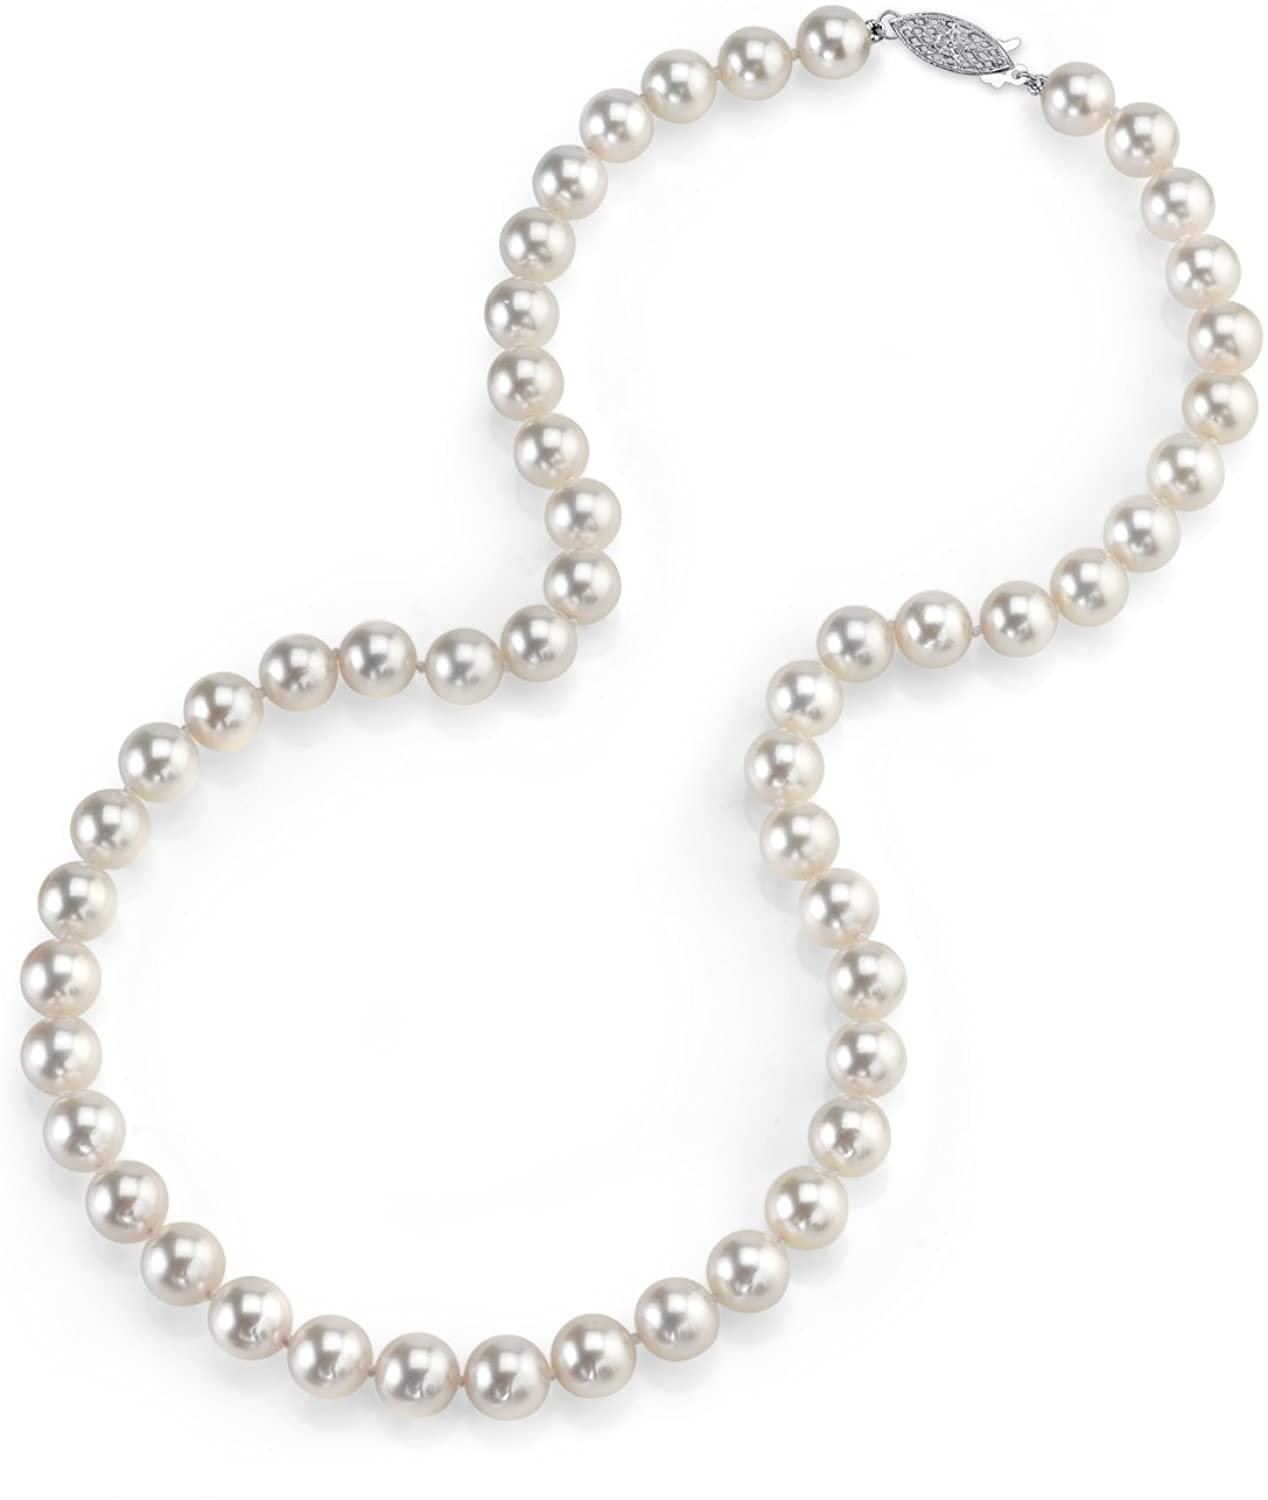 THE PEARL SOURCE 14K Gold 7.5-8.0mm AAA Quality Round Genuine White Japanese Akoya Saltwater Cultured Pearl Necklace in 17